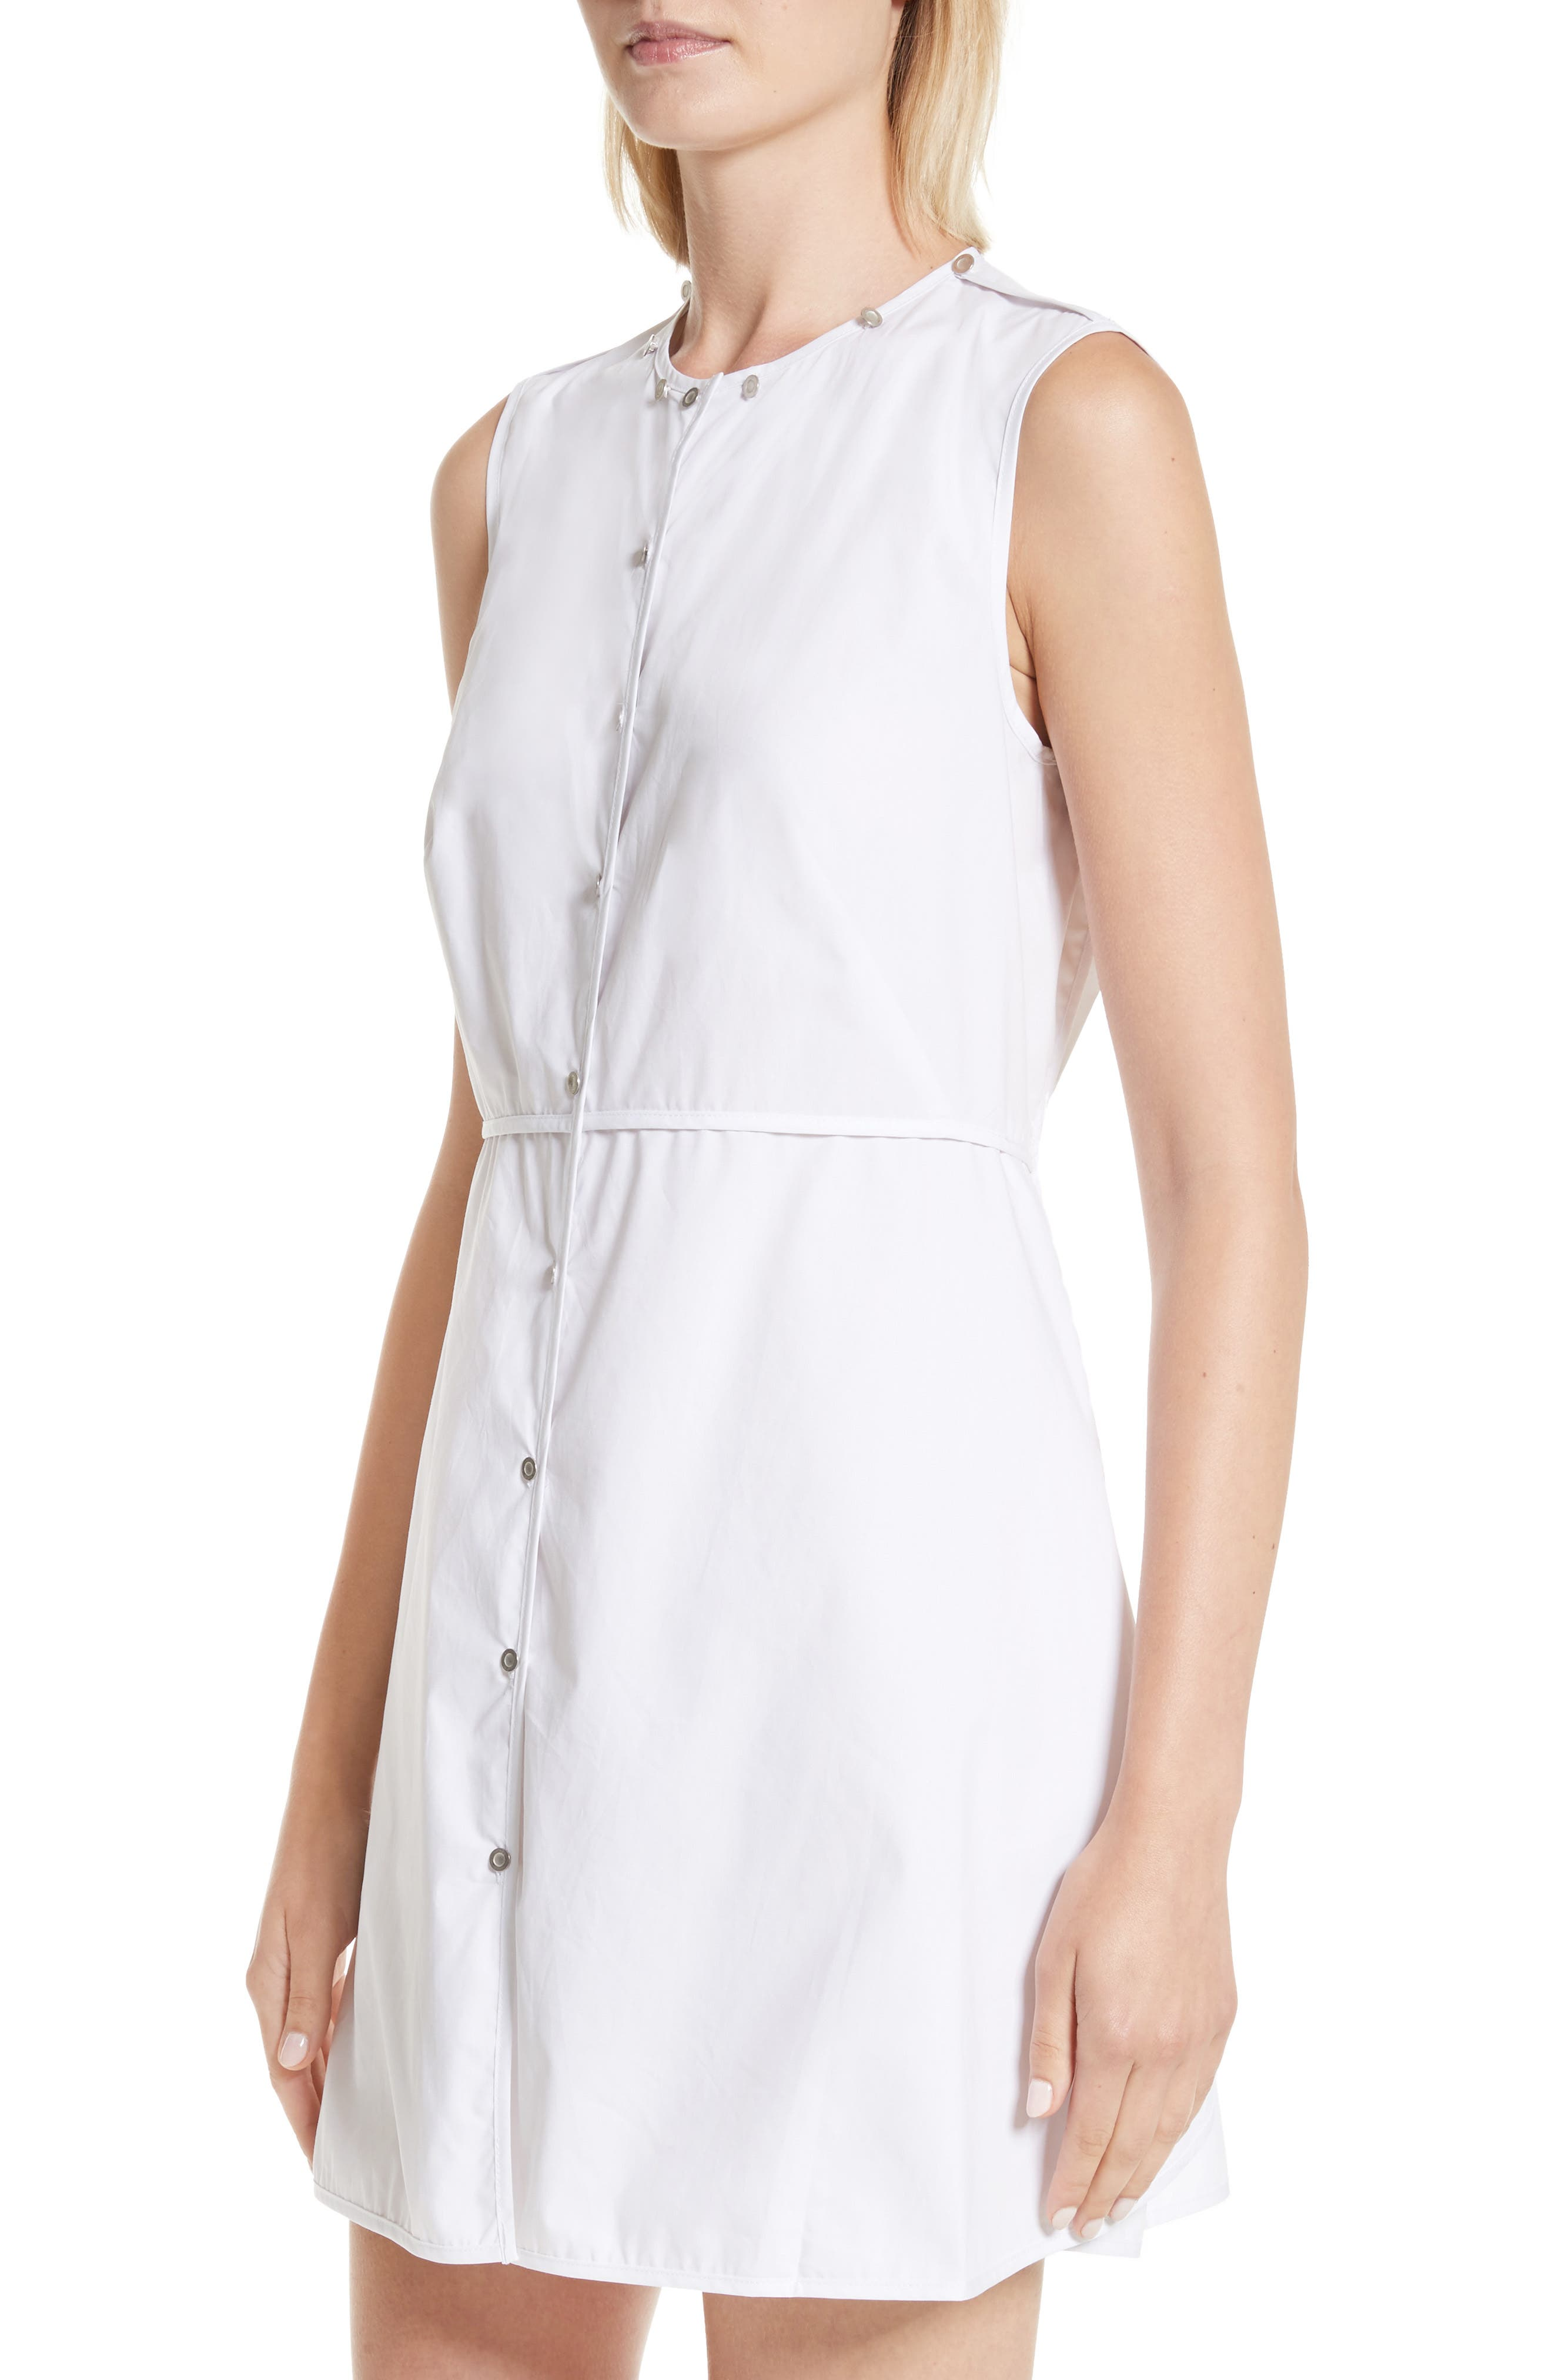 Transformer Poplin Dress with Detachable Embroidered Collar,                             Alternate thumbnail 4, color,                             100